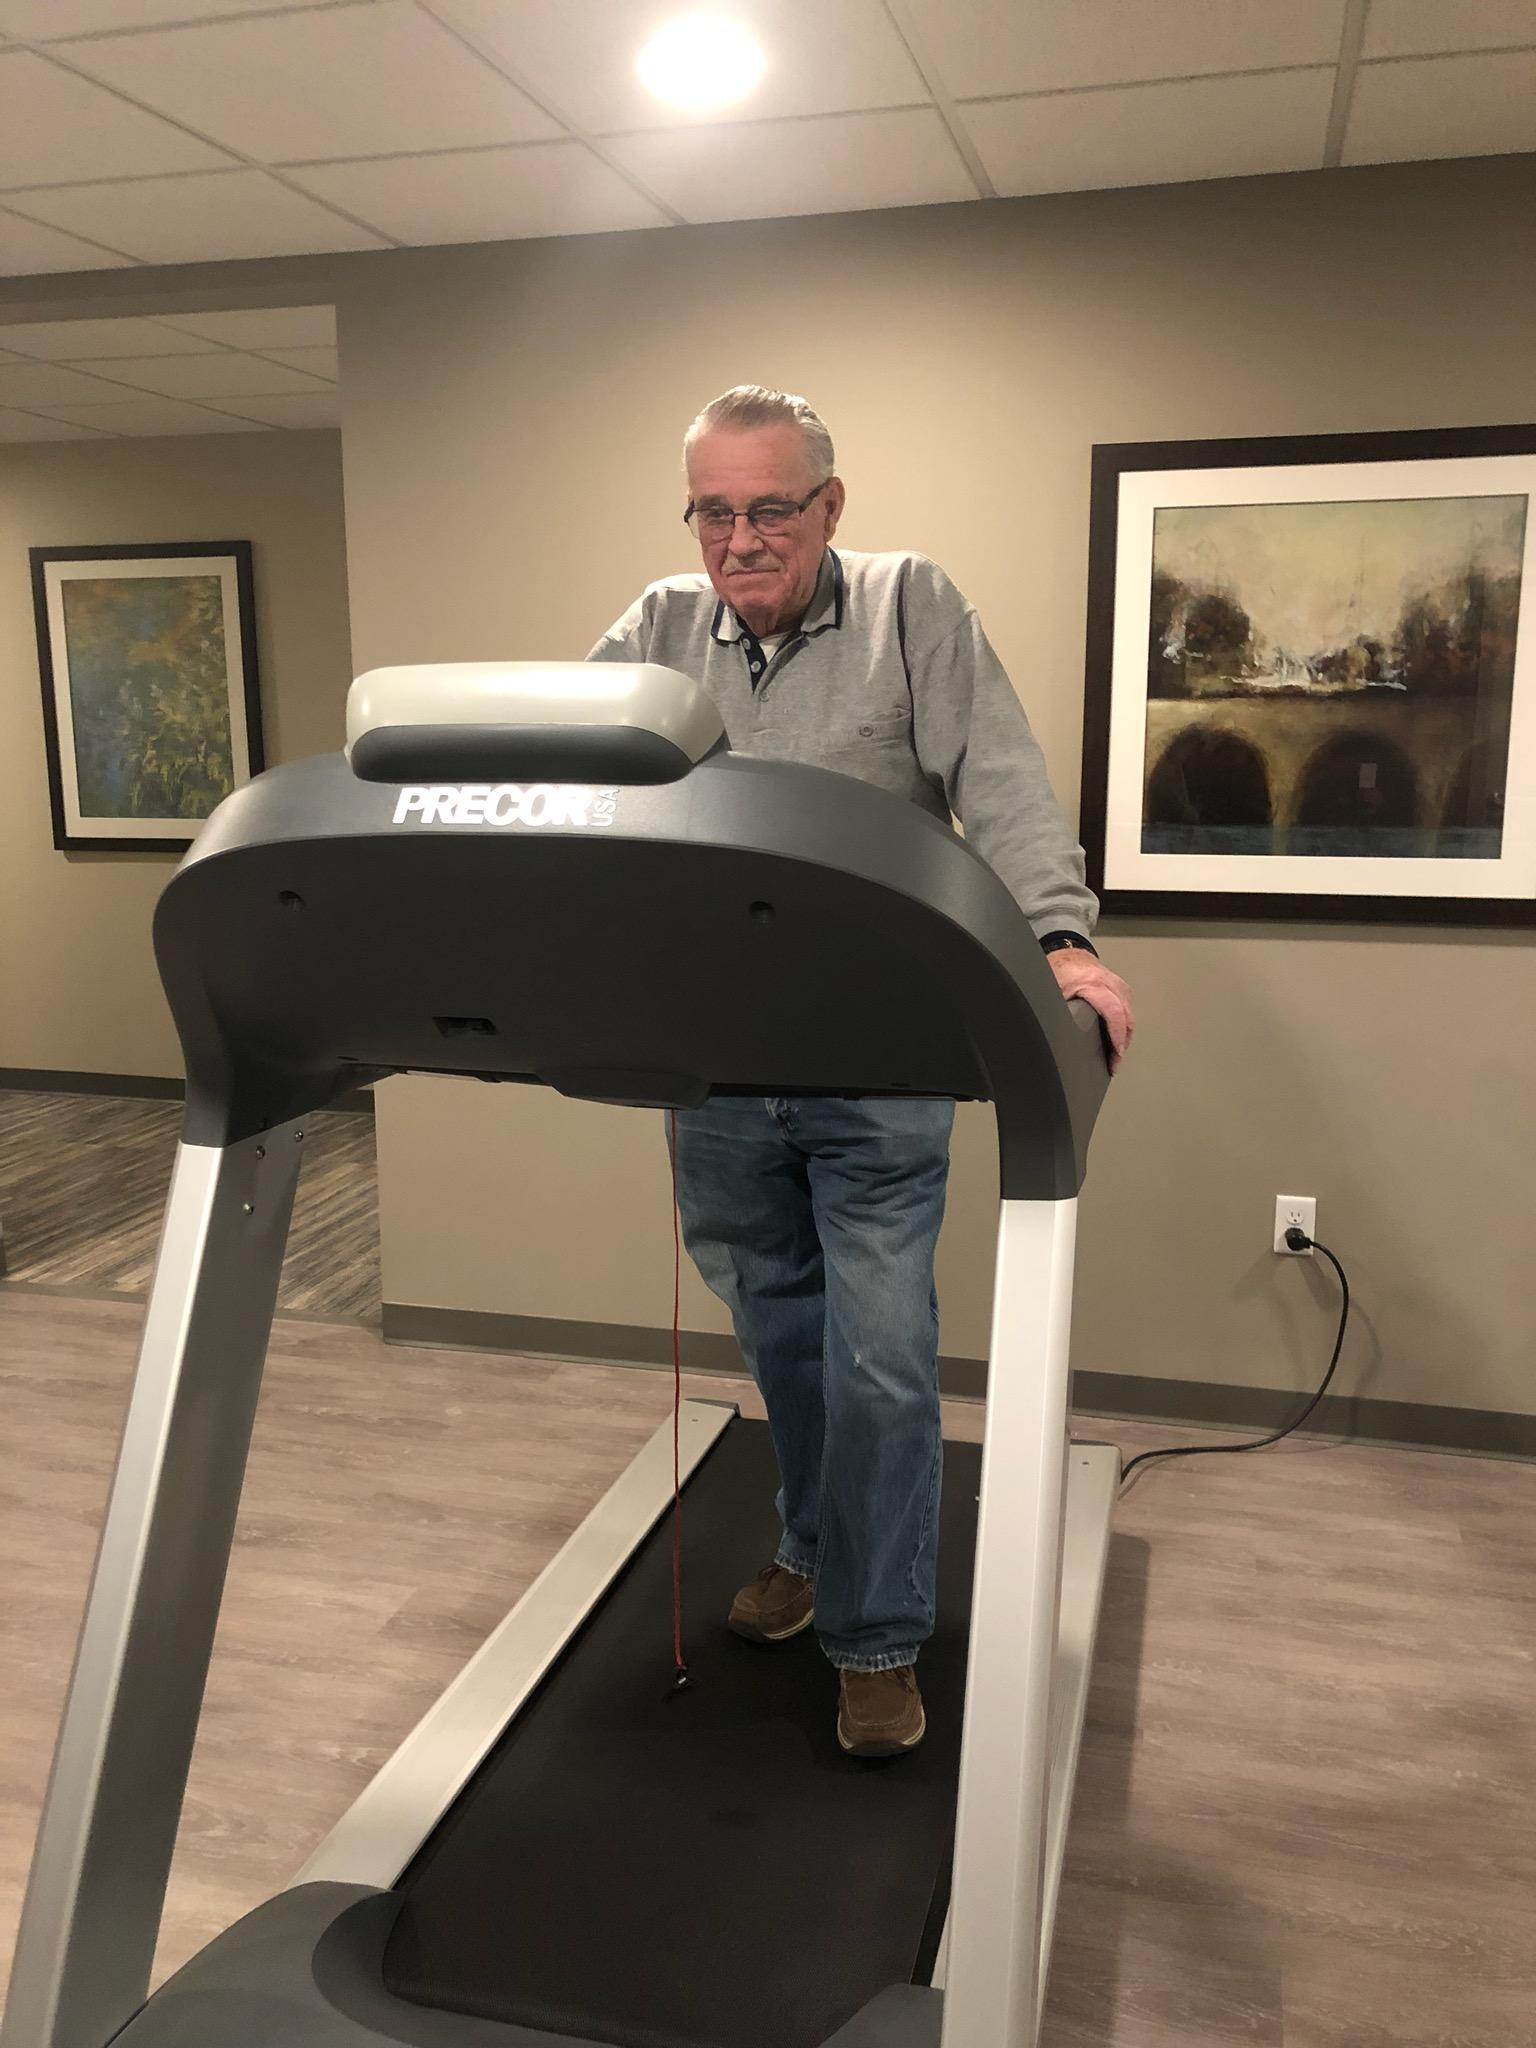 resident on treadmill